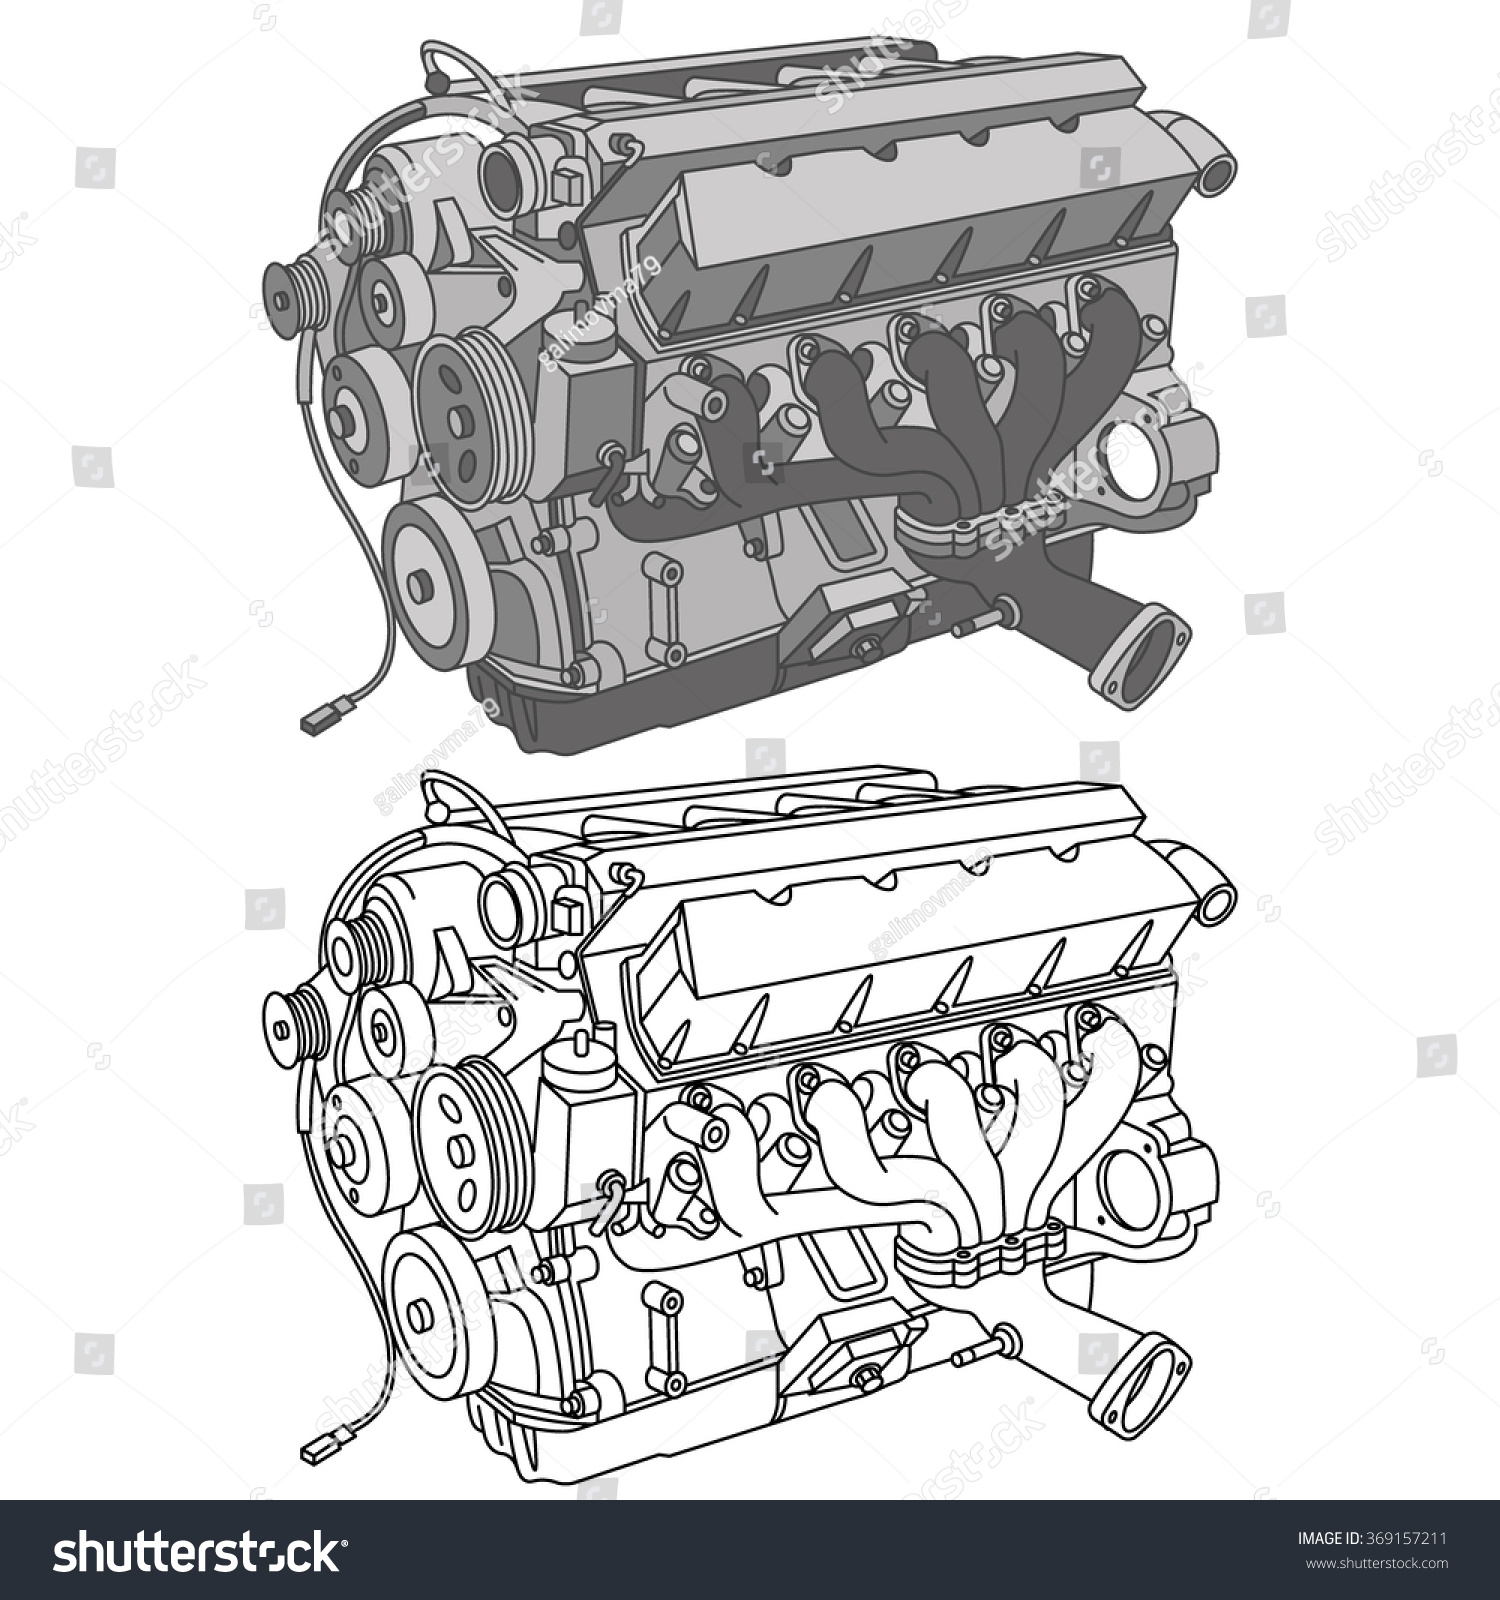 Car Engine Icons Isometric Vector Stock Vector 369157211 - Shutterstock